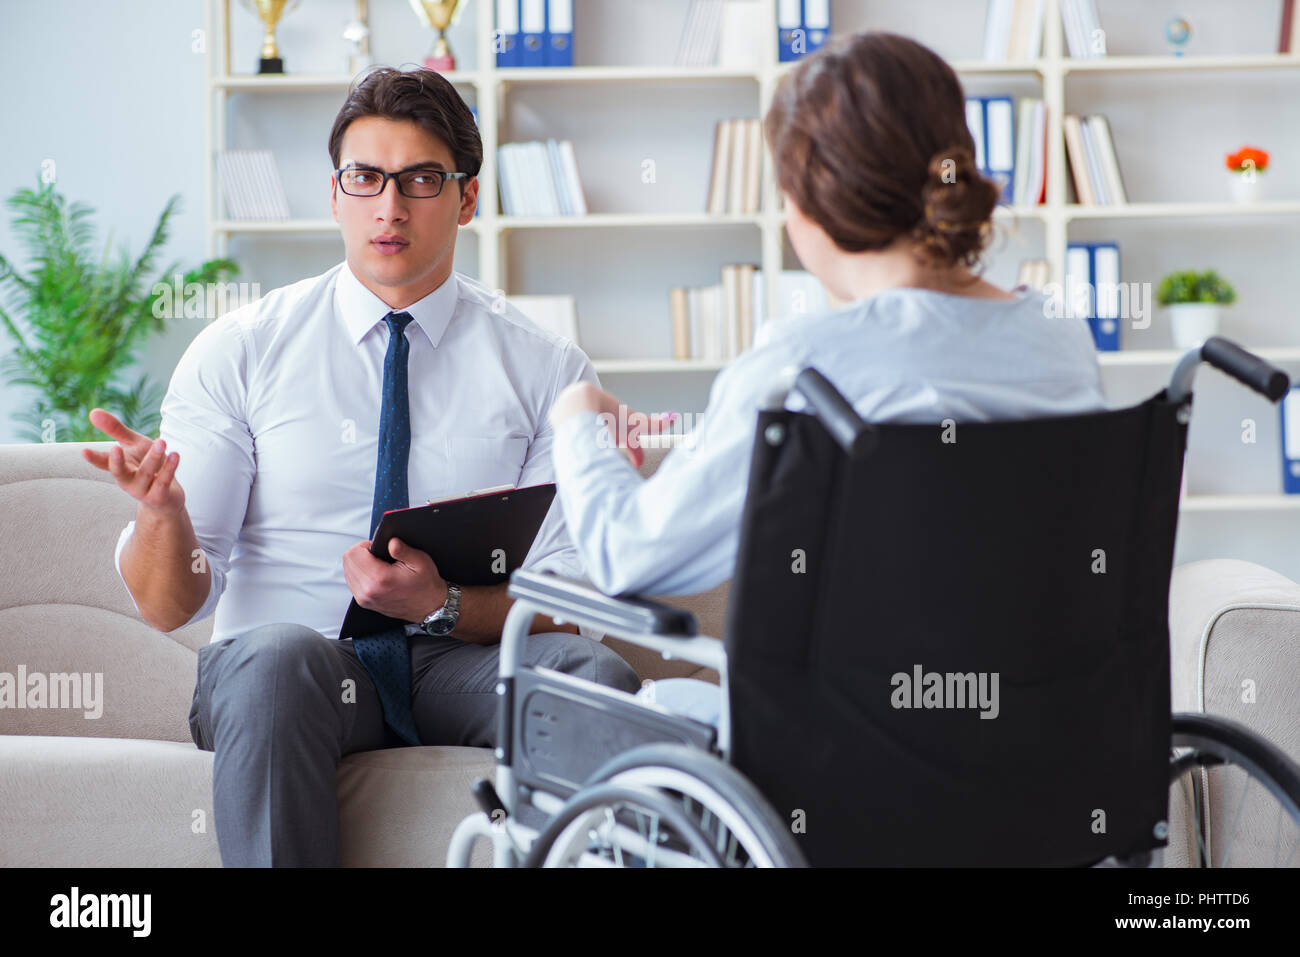 Doctor Patient Rehabilitation Counselor Psychology Stock Photos